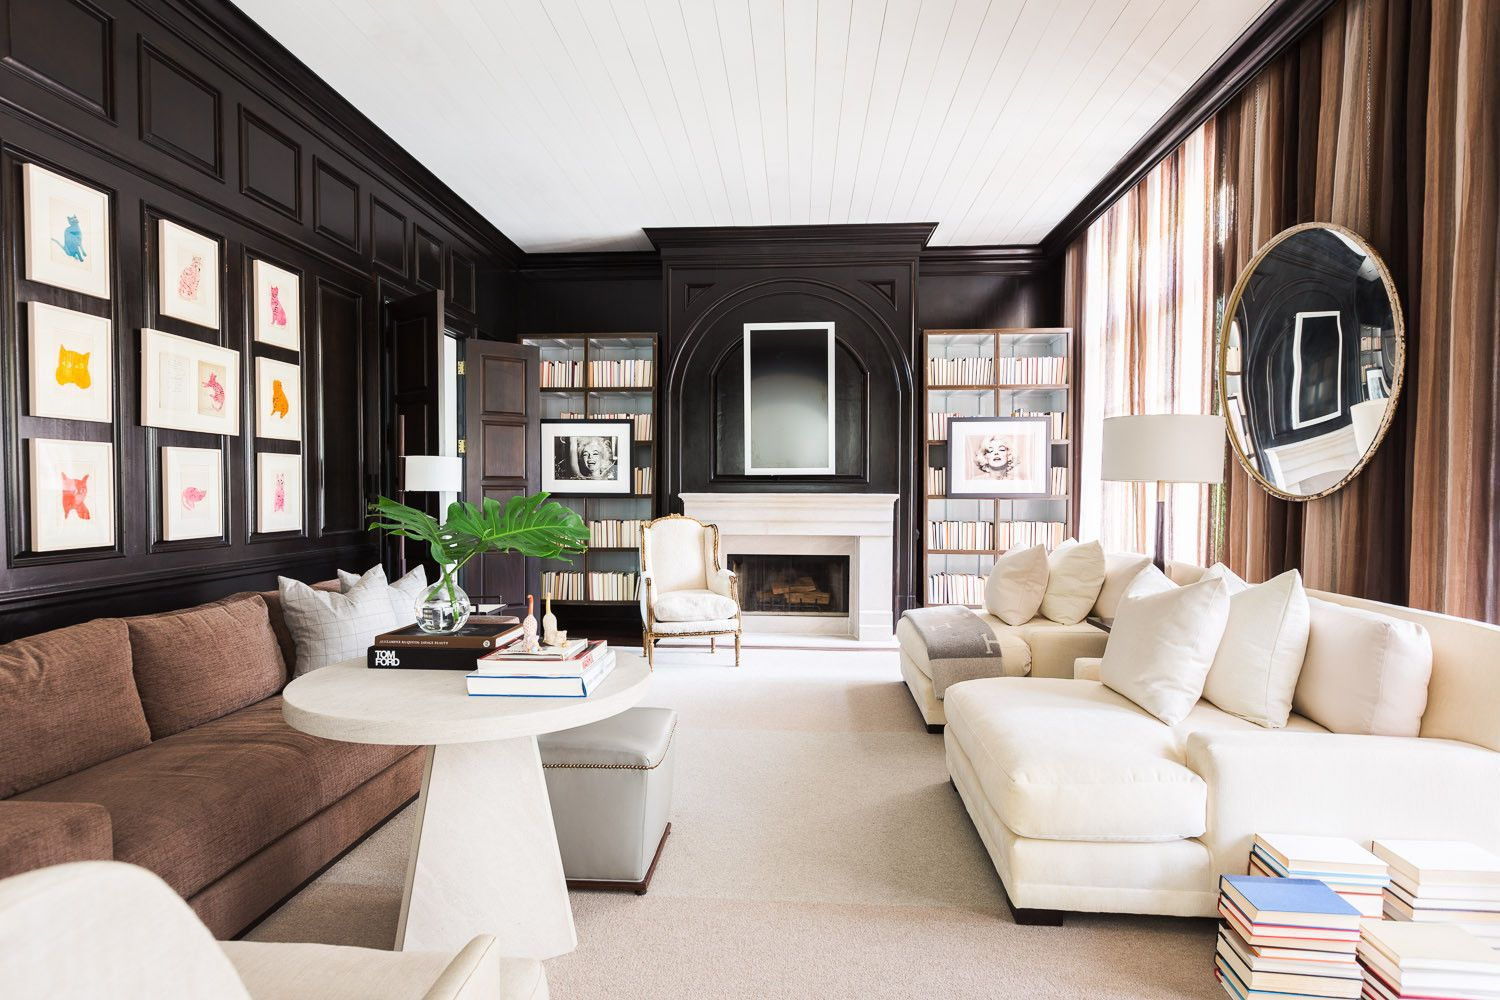 20 Living Room Design Ideas To Make Your Space Look Luxe